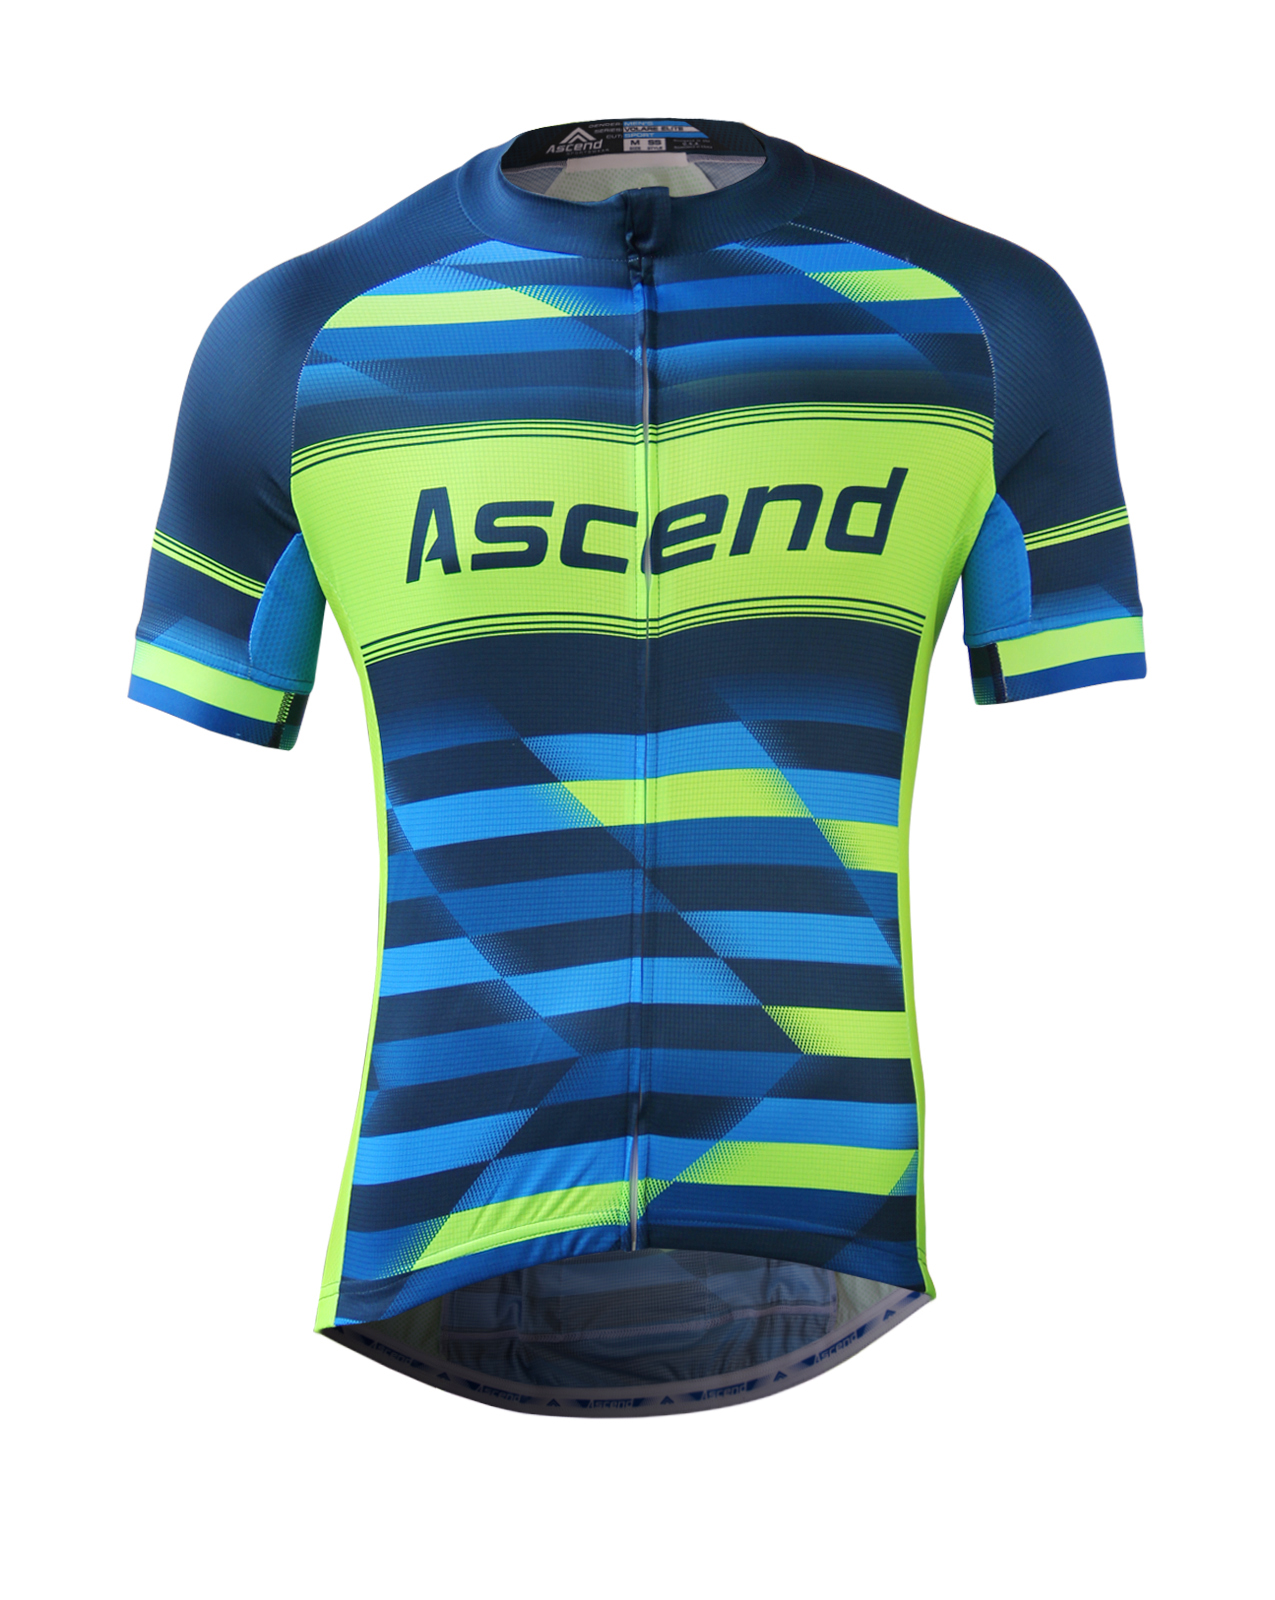 Volare elite custom cycling jersey ascend sportswear for Custom cycling jersey template